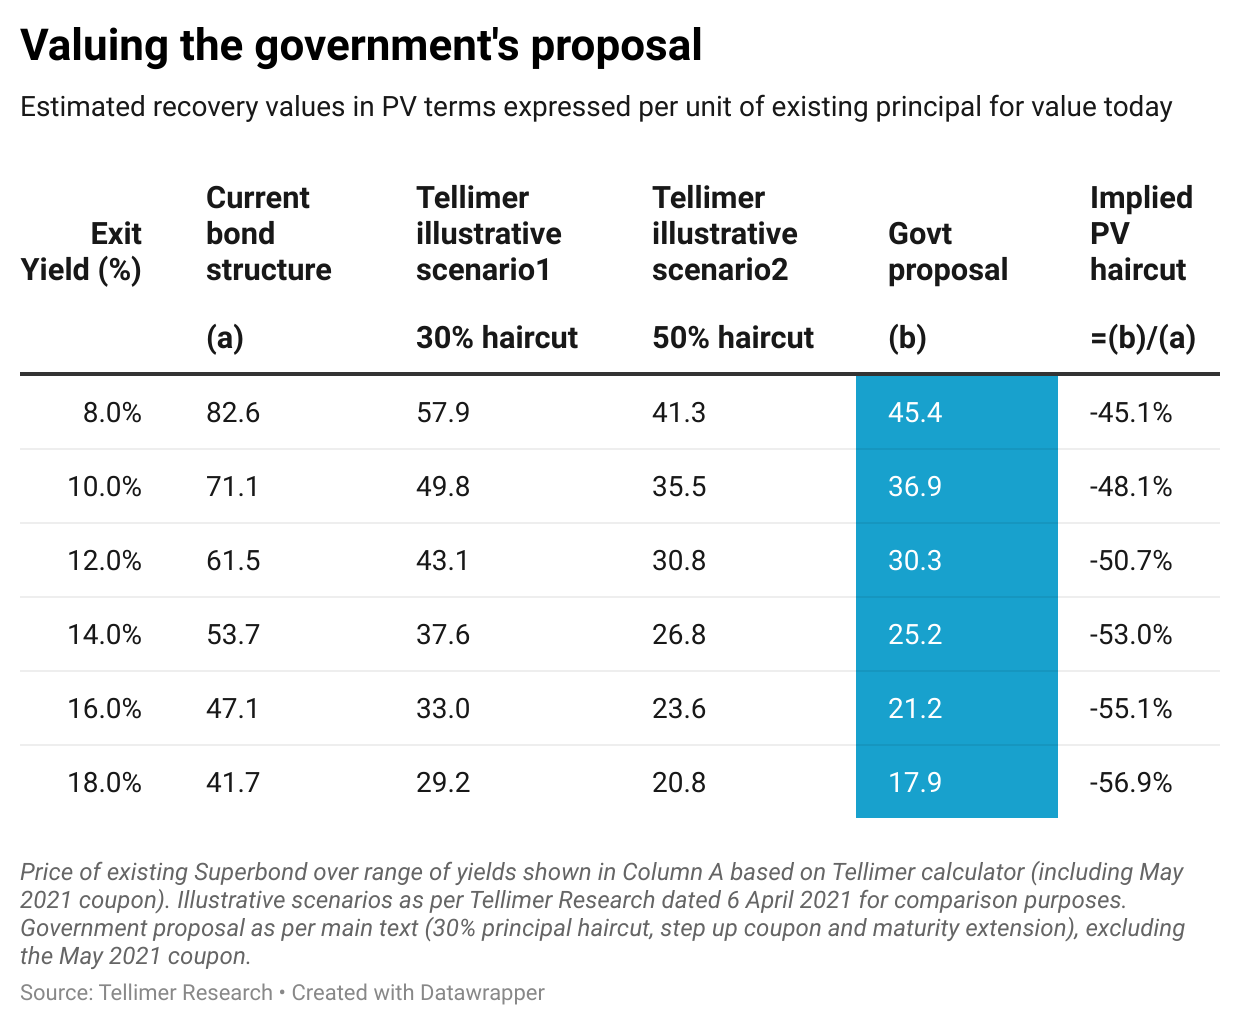 Valuing the government's proposal